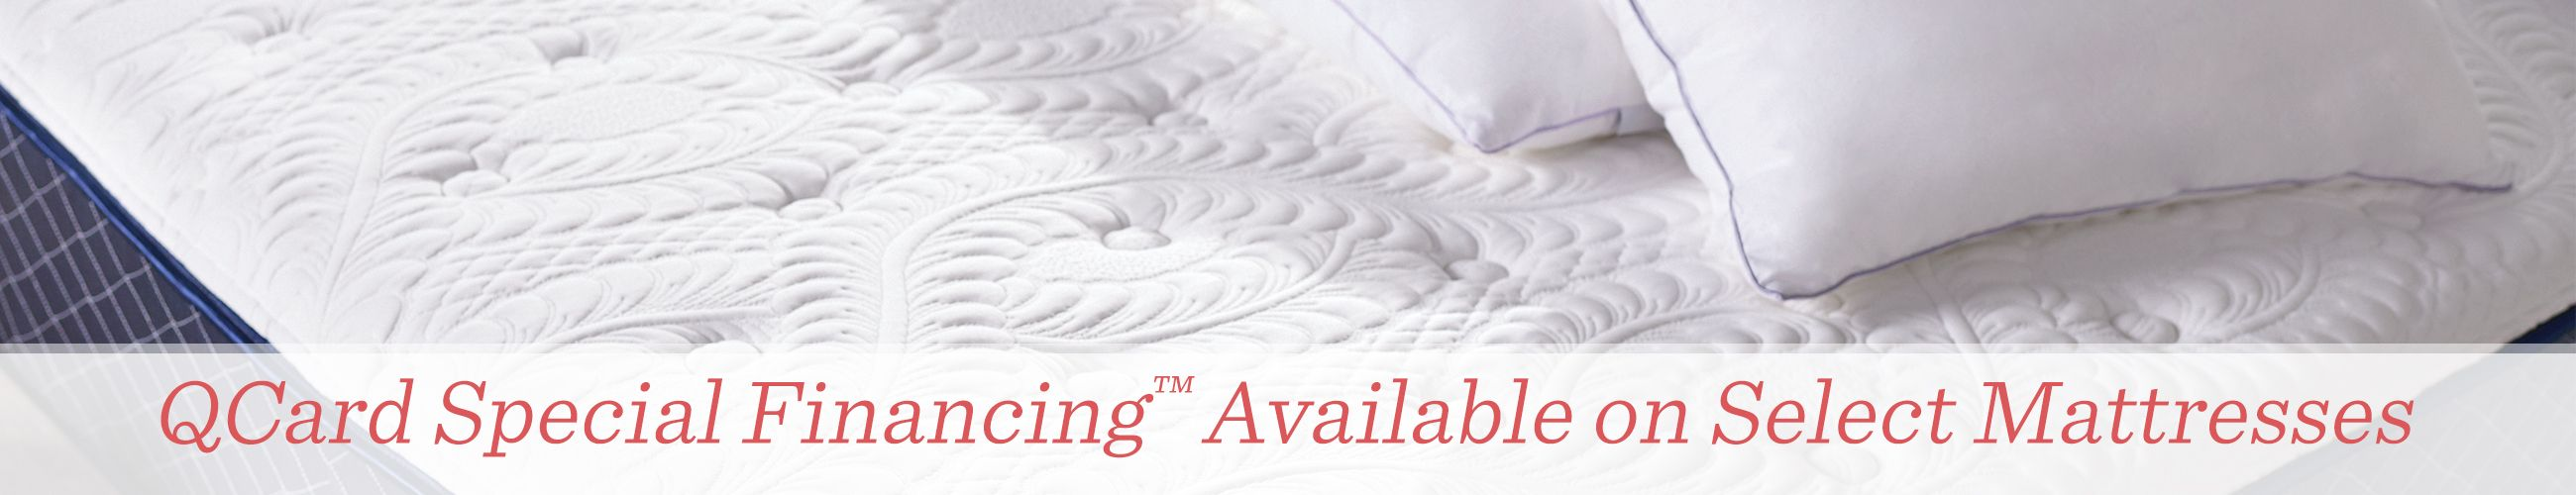 QCard Special Financing™ Available on Select Mattresses.